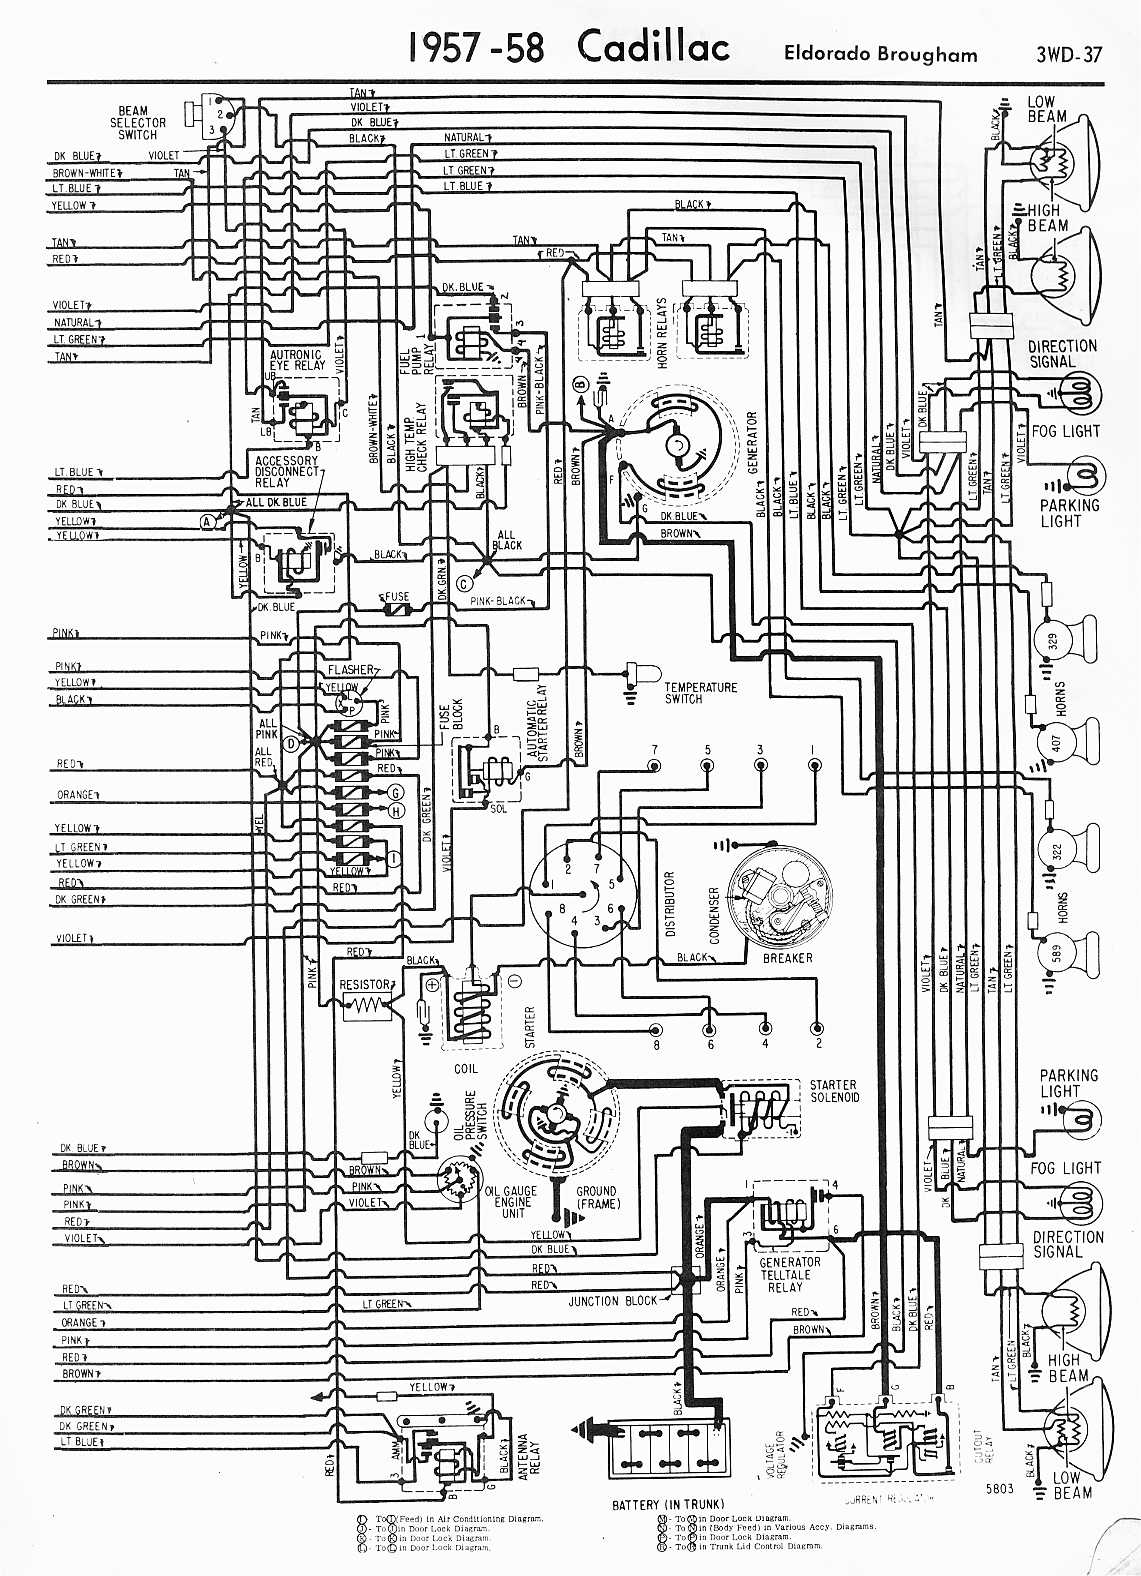 1976 Jeep Steering Column Wiring Diagram Library Chevy For 1972 Cadillac Eldorado Real U2022 Triumph Spitfire